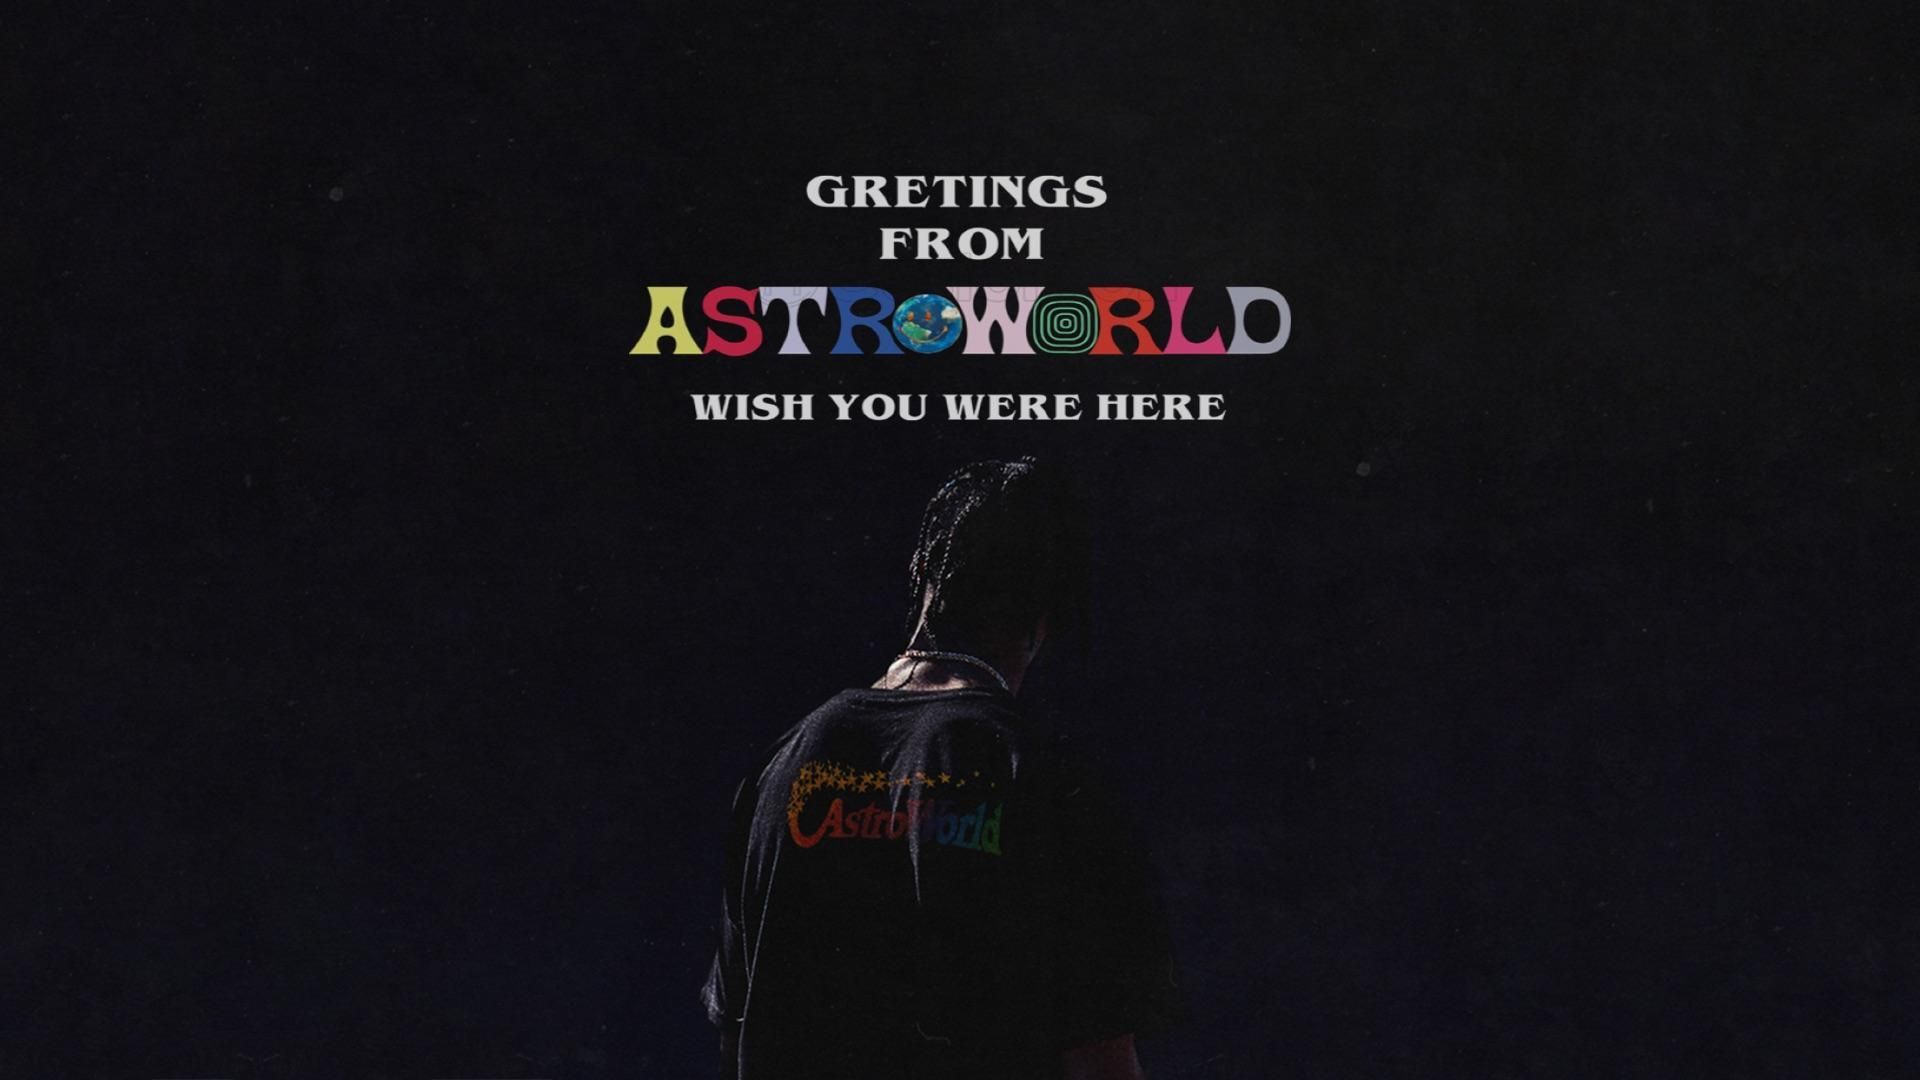 Travis Scott Astroworld 1920 X 1080 Travis Scott Wallpapers Travis Scott Quotes Travis Scott Astroworld